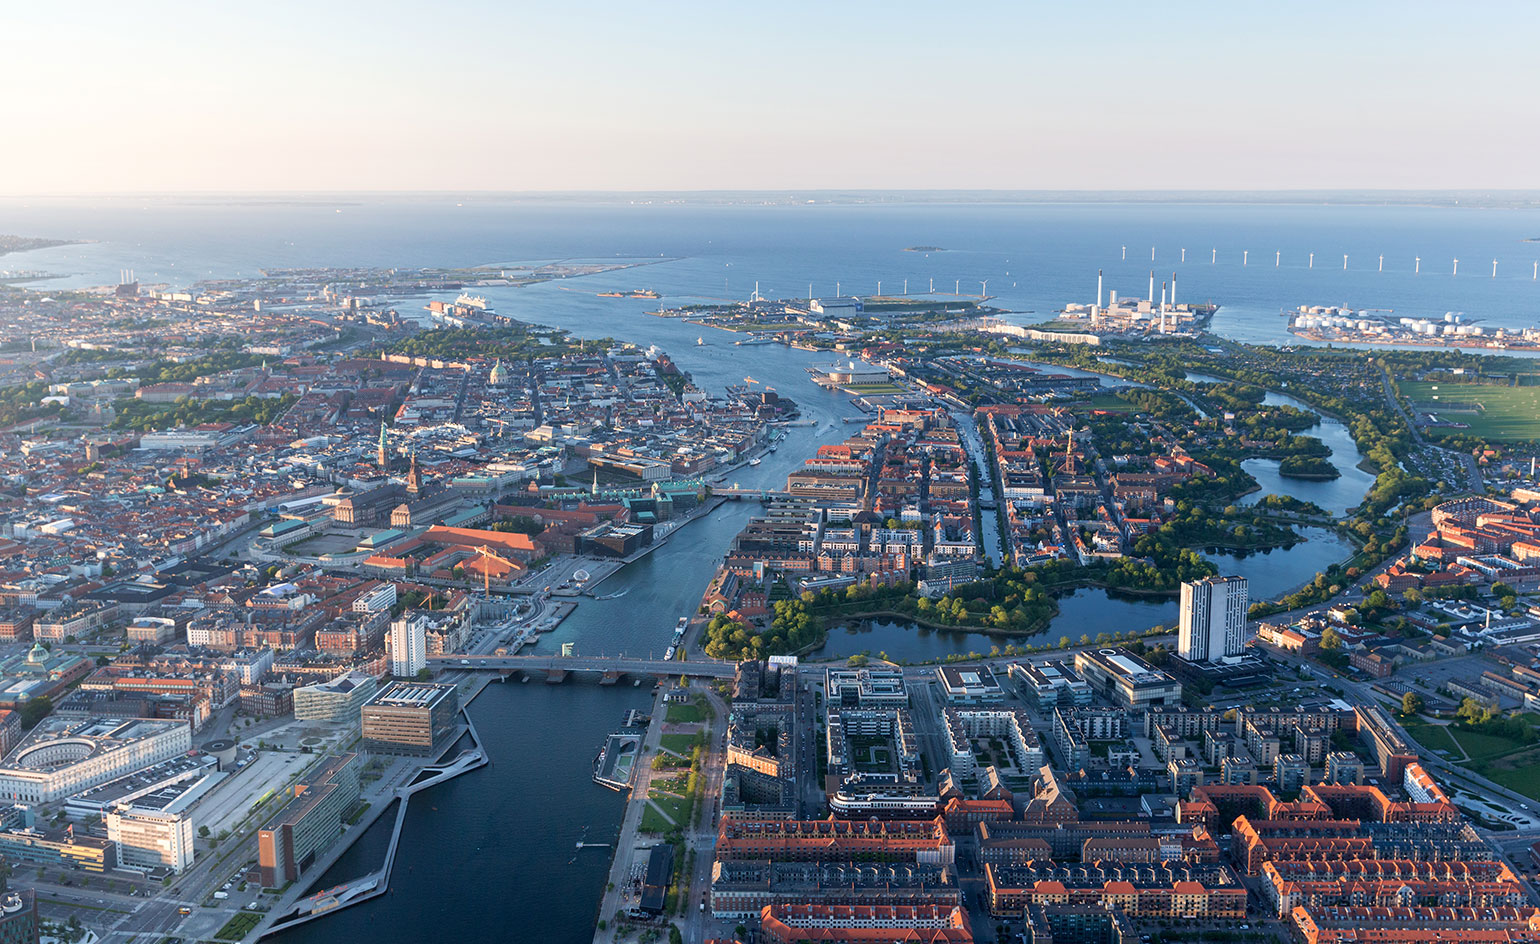 copenhagen is the best city in Hotels in copenhagen city centre: find the best copenhagen city centre hotels and save booking with expedia view over 140 copenhagen city centre hotel deals and read real guest reviews to help find the perfect hotel.